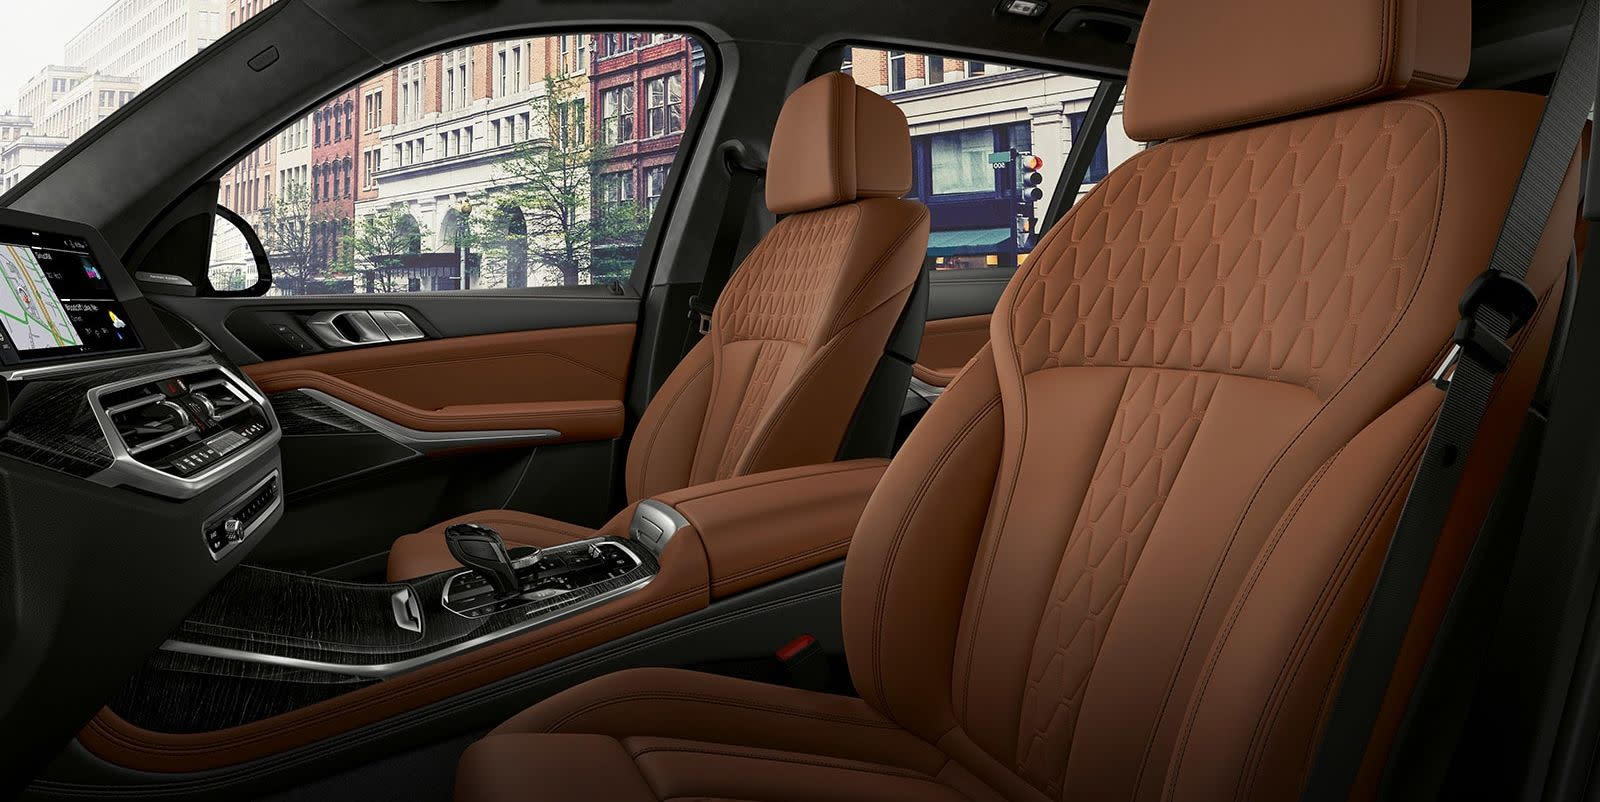 Cozy Cabin of the 2019 BMW X7